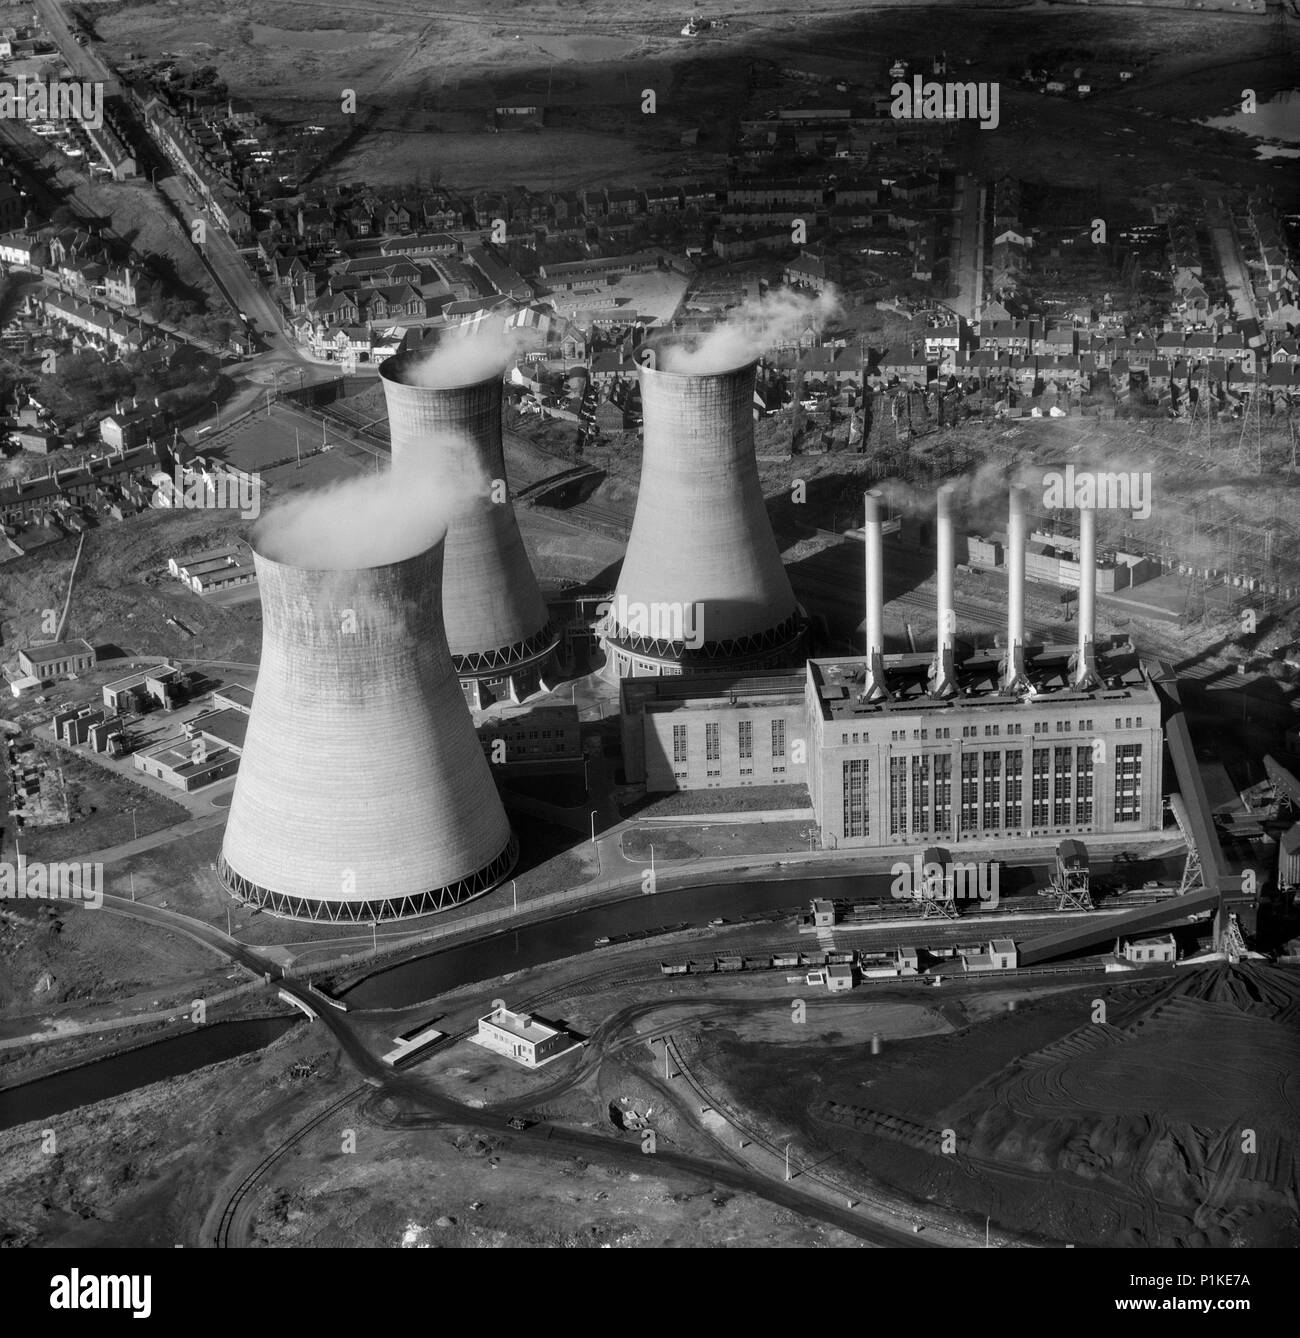 Ocker Hill Power Station, Tipton, Staffordshire, 1957. Aerial view of a coal-fired power station with three cooling towers emitting steam. It was open - Stock Image